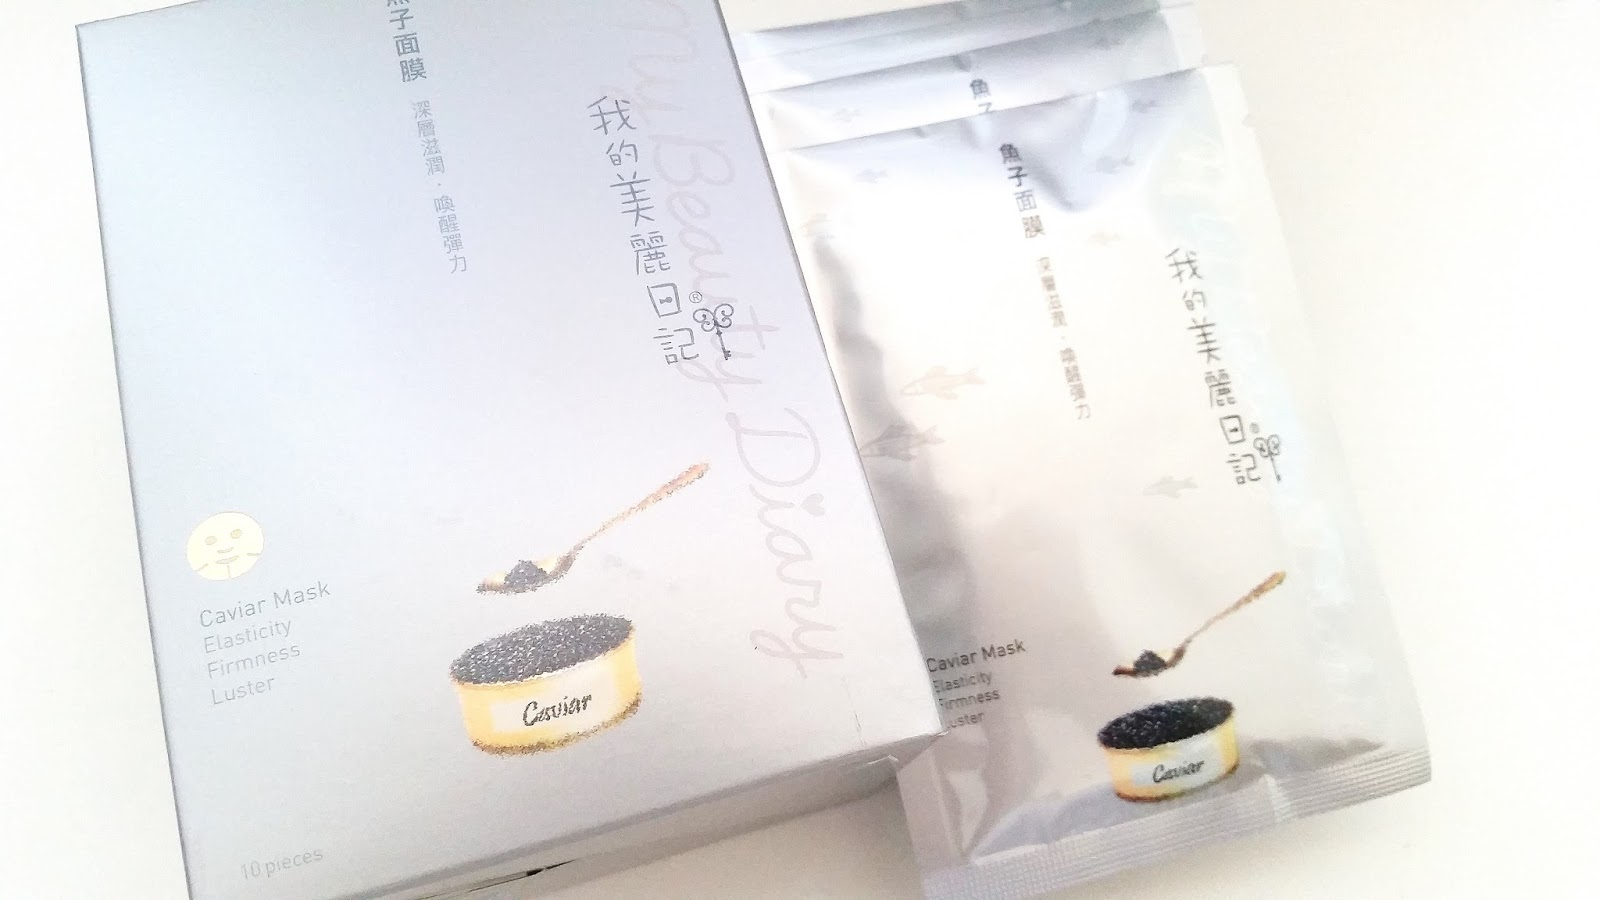 My Beauty Diary Caviar Mask Review | Dreams to Creations